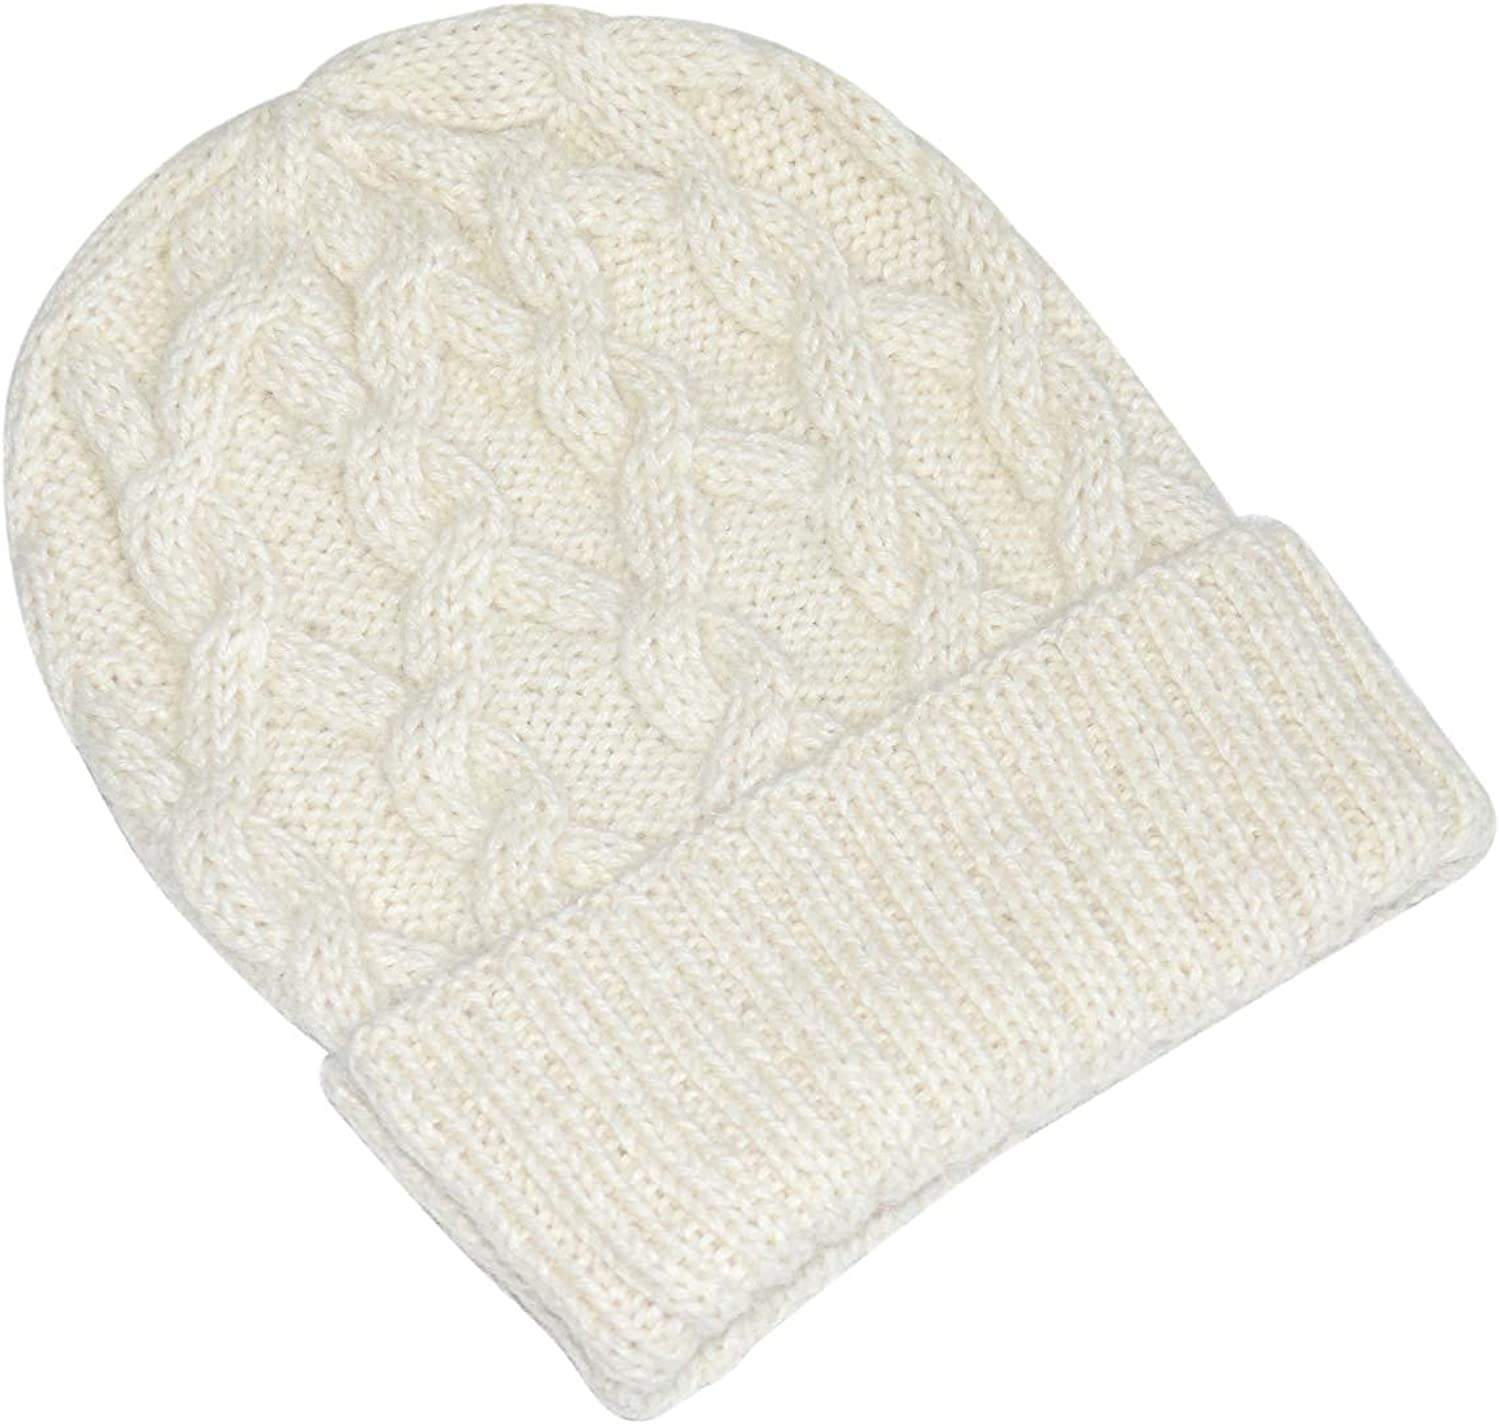 Invisible World Women's 100% Alpaca Hat Wool Japan's largest assortment Ranking TOP12 Beanie Knit Winter